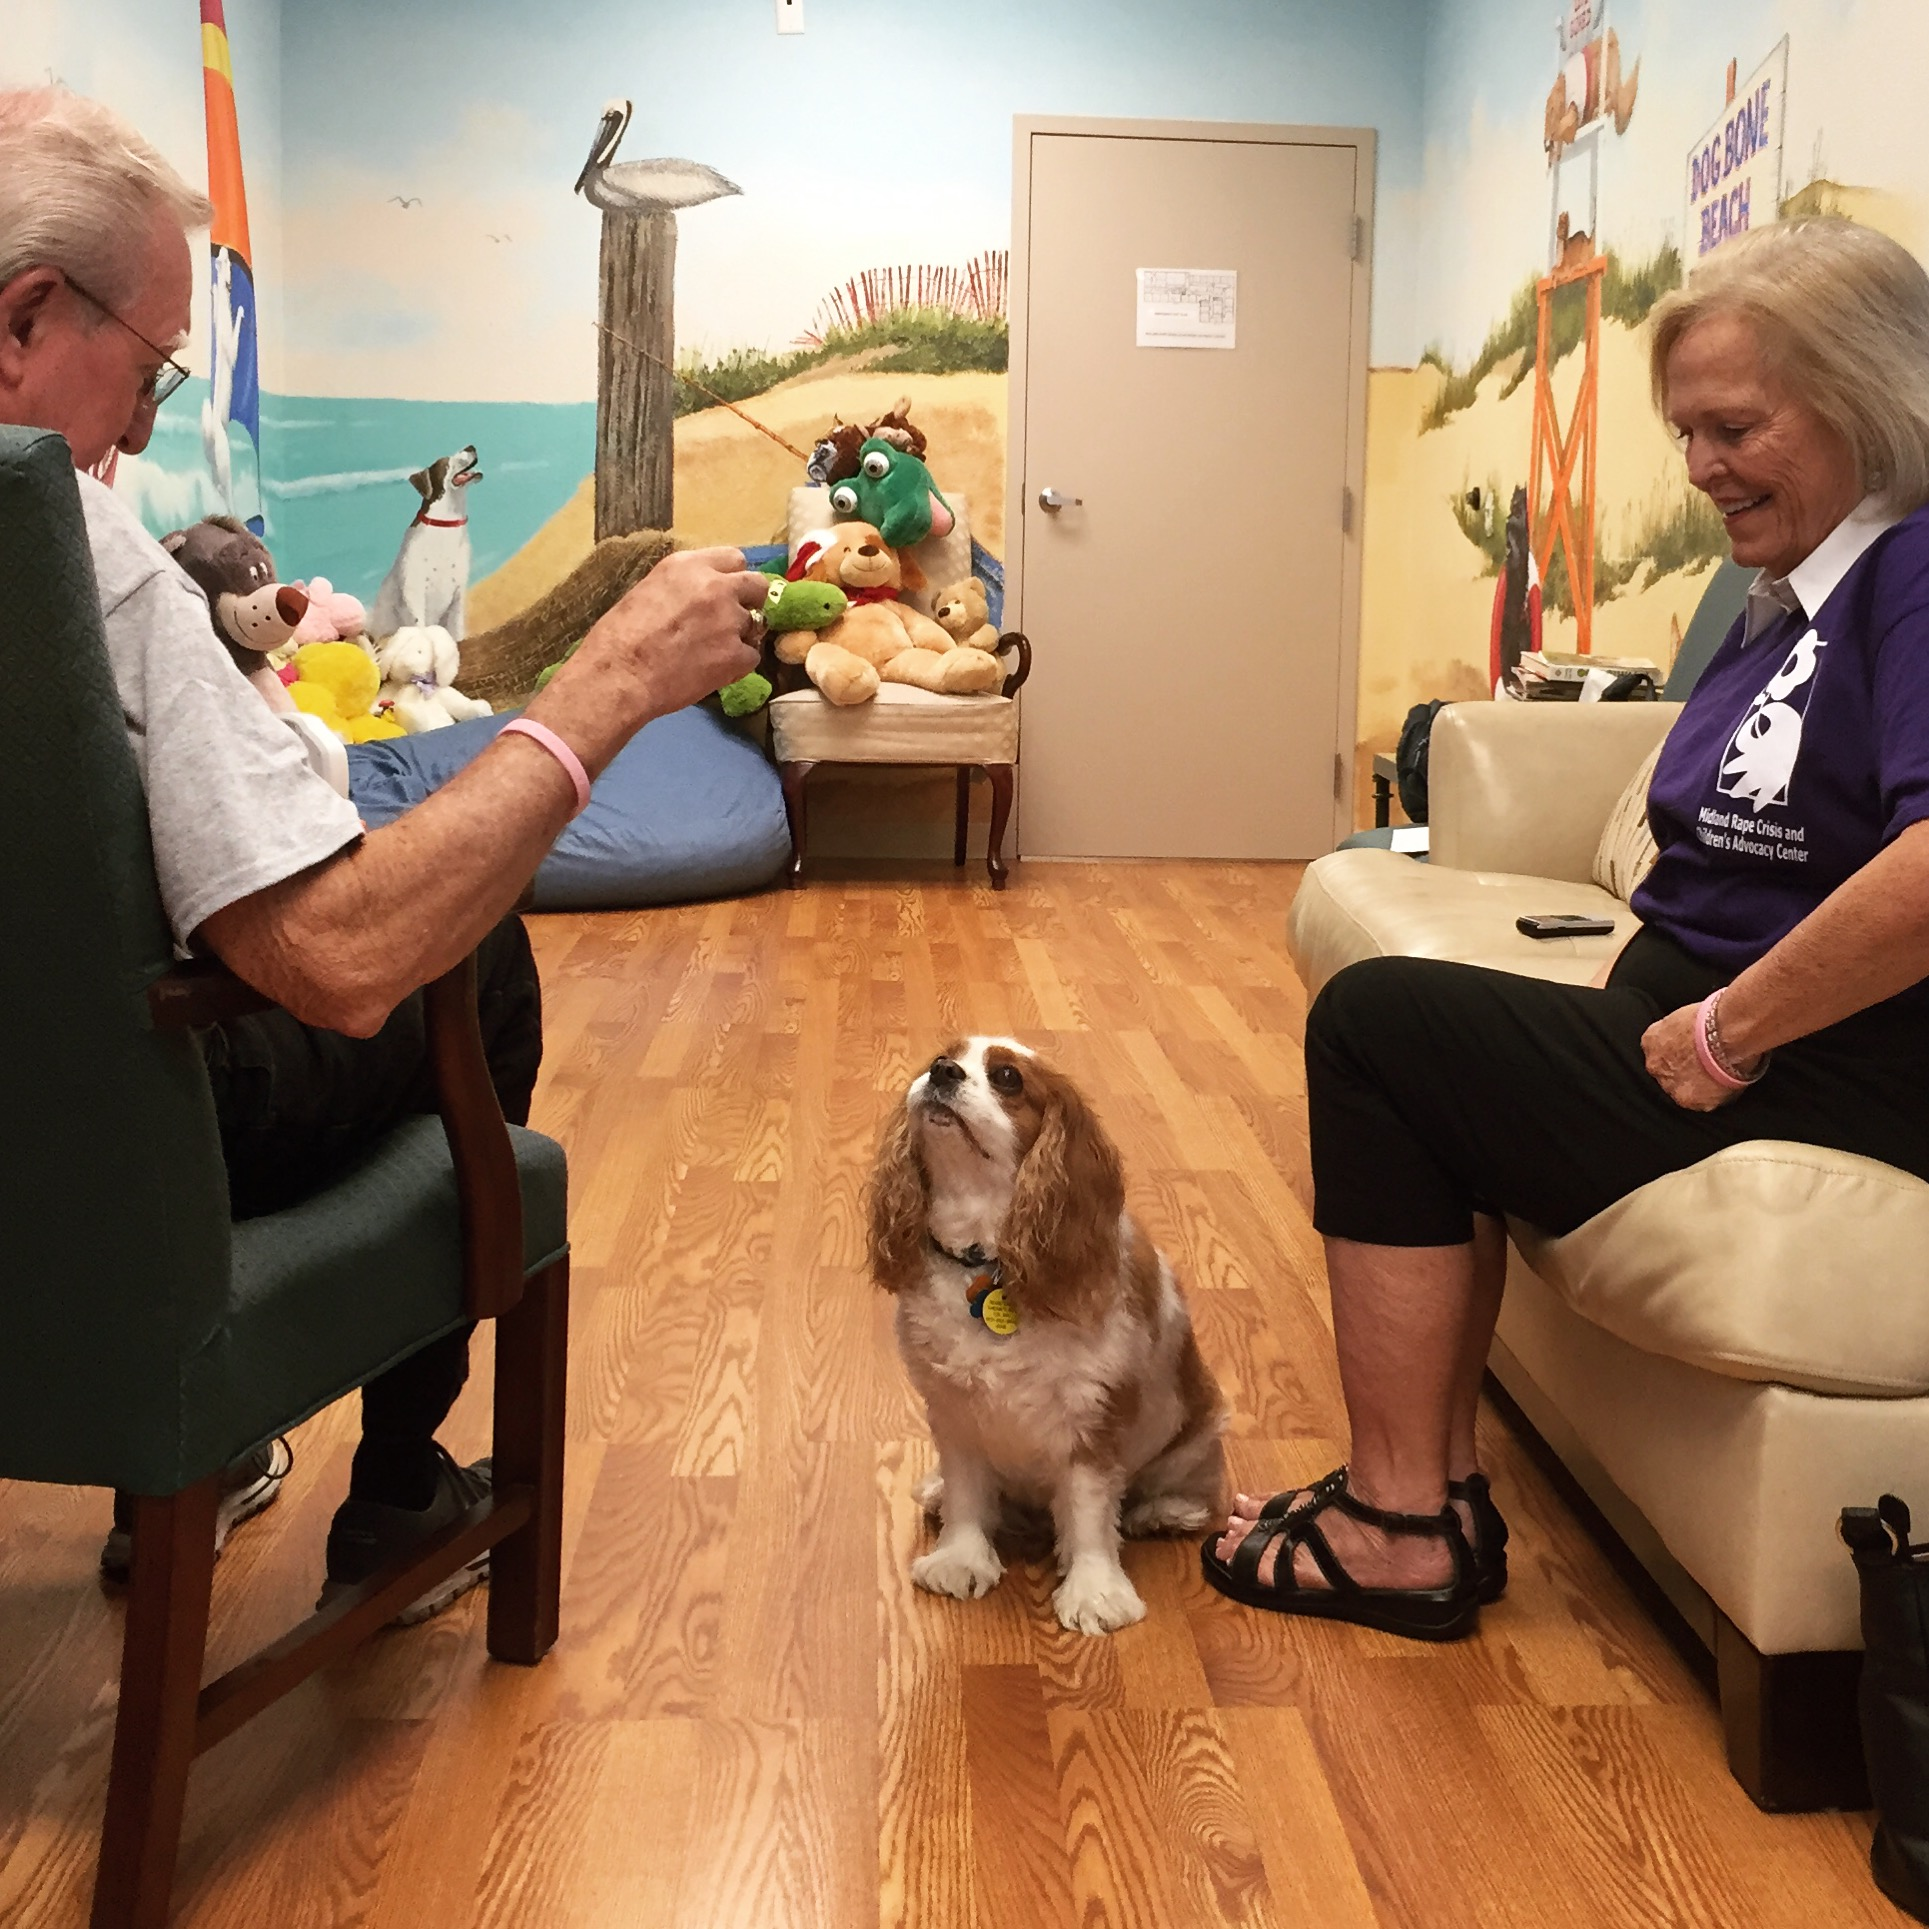 """Midland, TX. October, 2015. This is Gary and Carol and their dog Marley. Marley is a therapy dog at Midland's Rape Crisis and Children's Advocacy Center and at the hospital. """"There was a young girl that came in one time, she was hugging herself, wearing a big sweatshirt with her hood on, just completely still,"""" said Carol. """"Marley came over to her and just sat with her, leaning against her legs. After a little while, she reached out and put her hand on his head, and smiled a little bit. We never know what the kids have been through, we don't ask them. But somehow Marley knows. Dogs can connect when no one else can.""""  #SnapshotLives     Link to article:  http://www.mrt.com/news/top_stories/article_5d222f52-751b-11e5-b384-1ba335d9529a.html"""